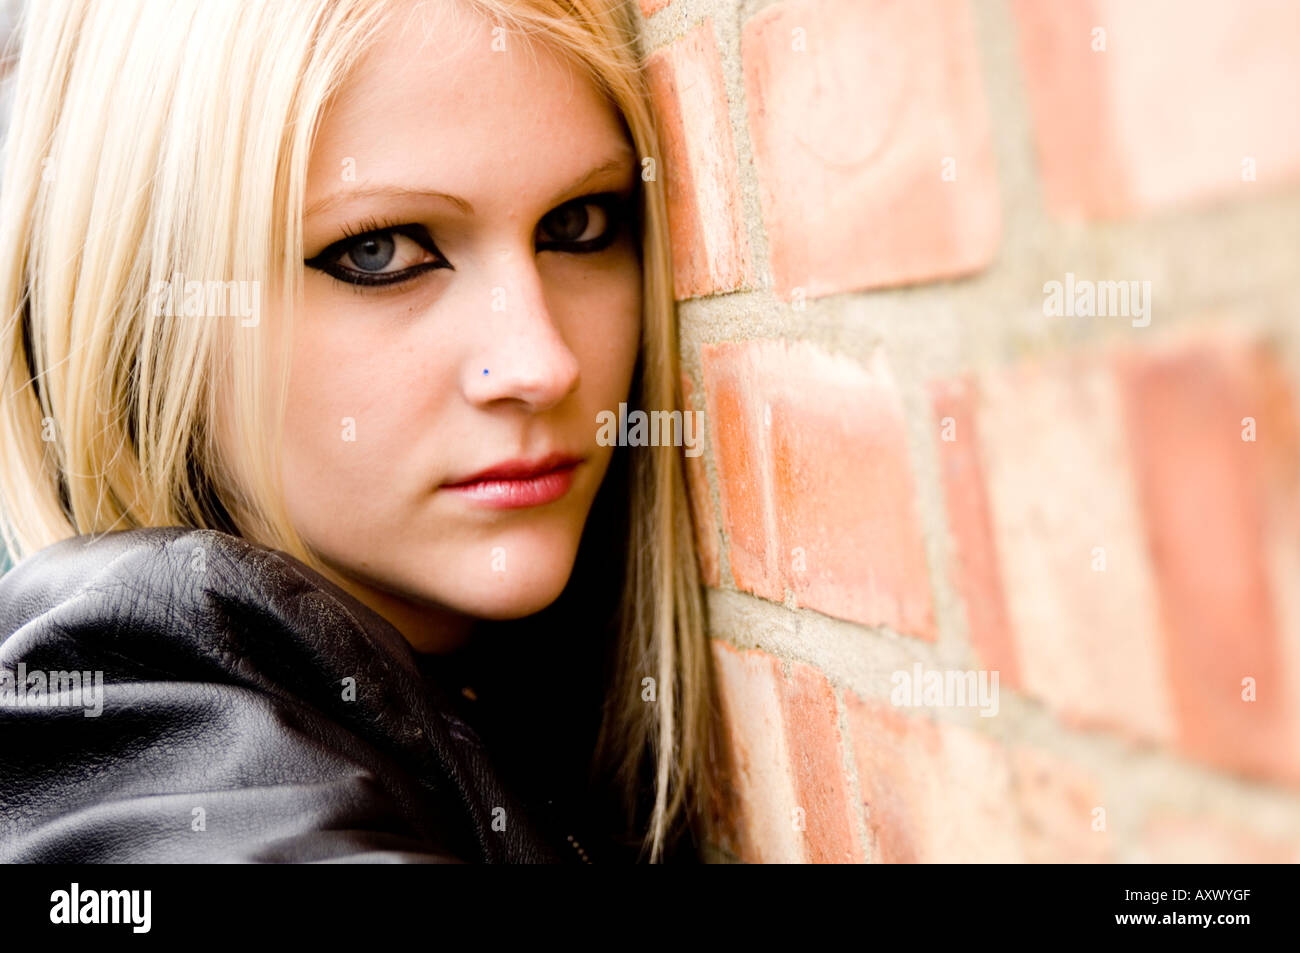 young female model, 17 years old, moody goth look, pressed against a